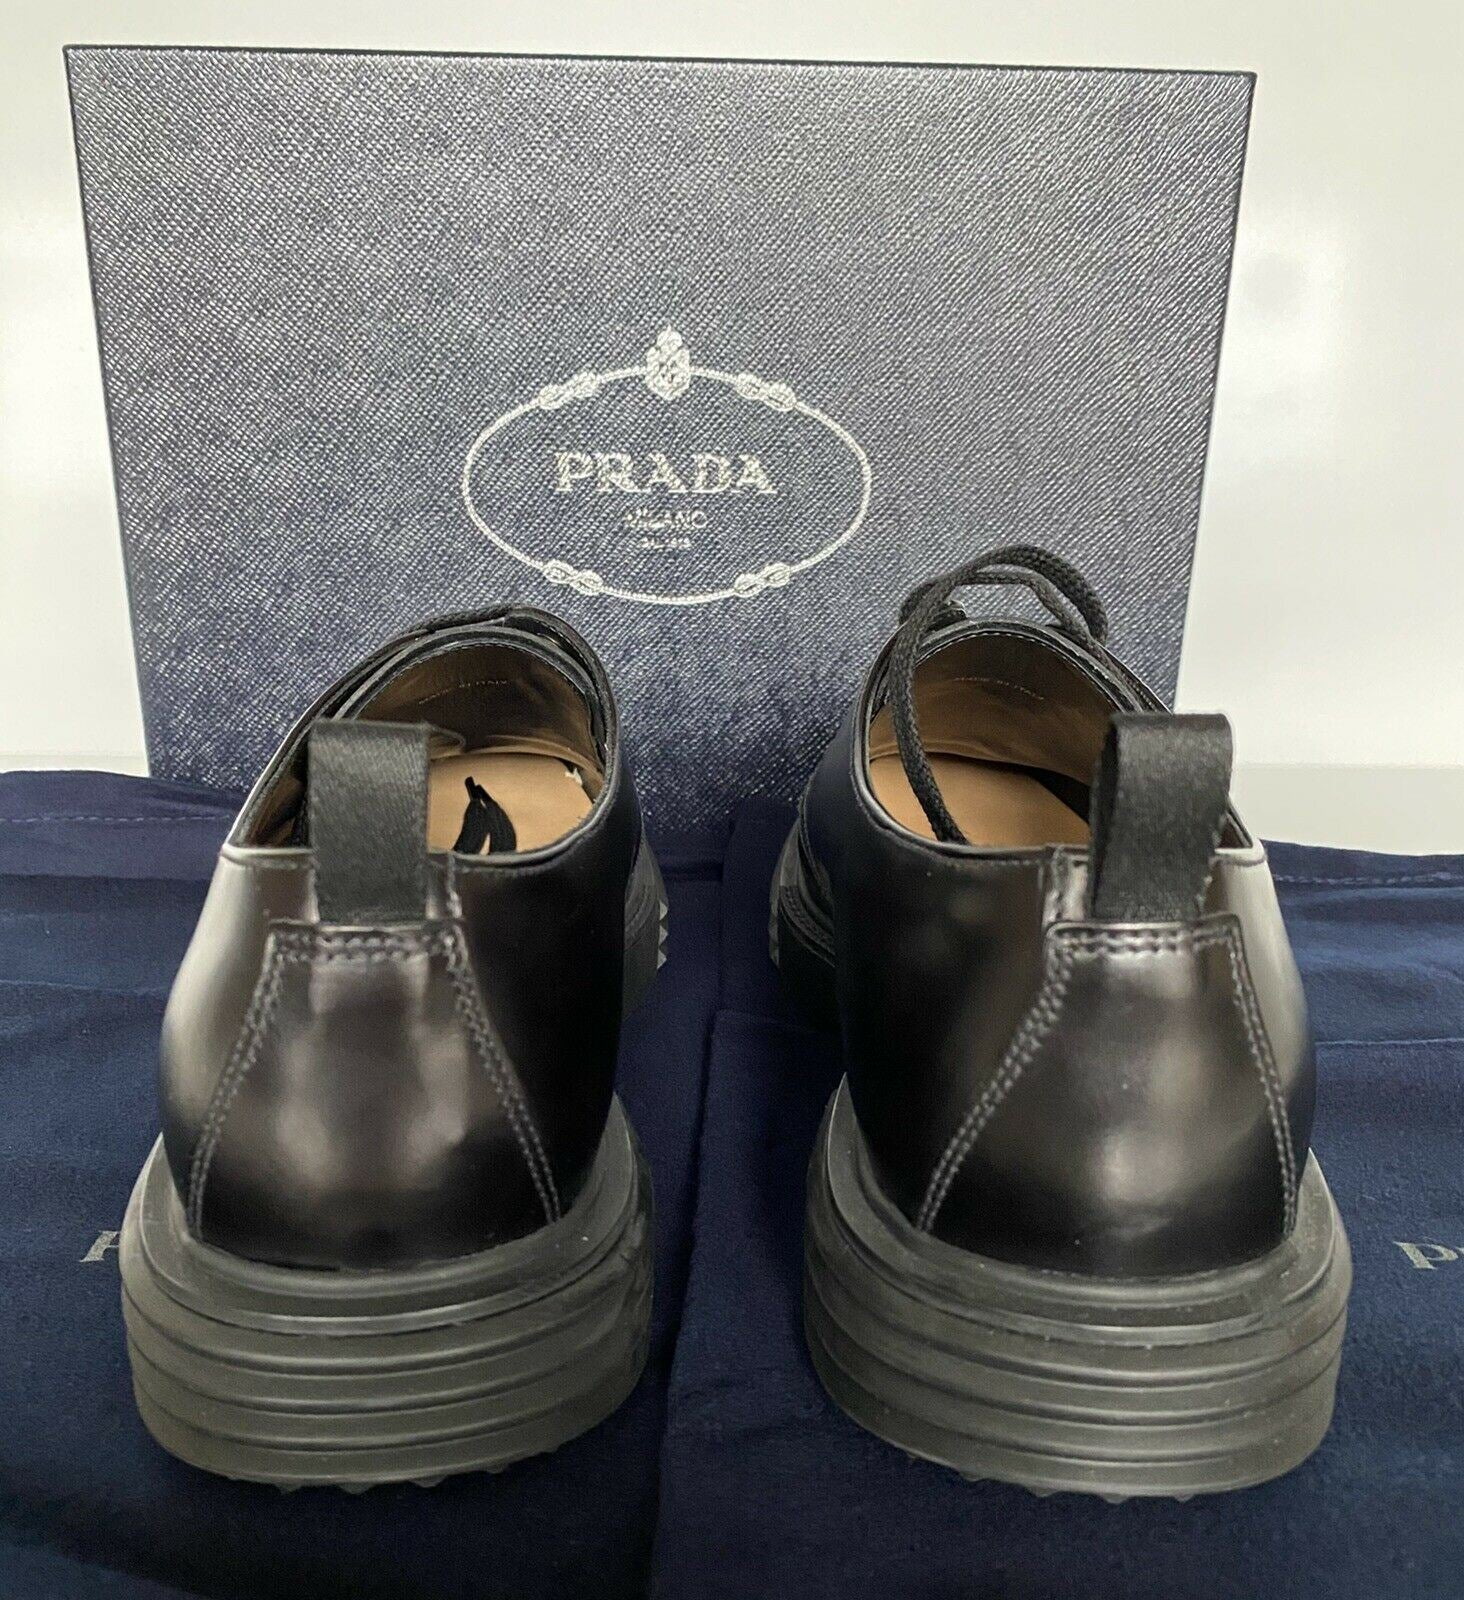 NIB $750 Prada Black Leather Rubber Sole Shoes 11 US (Prada 10)  2EE286 Italy